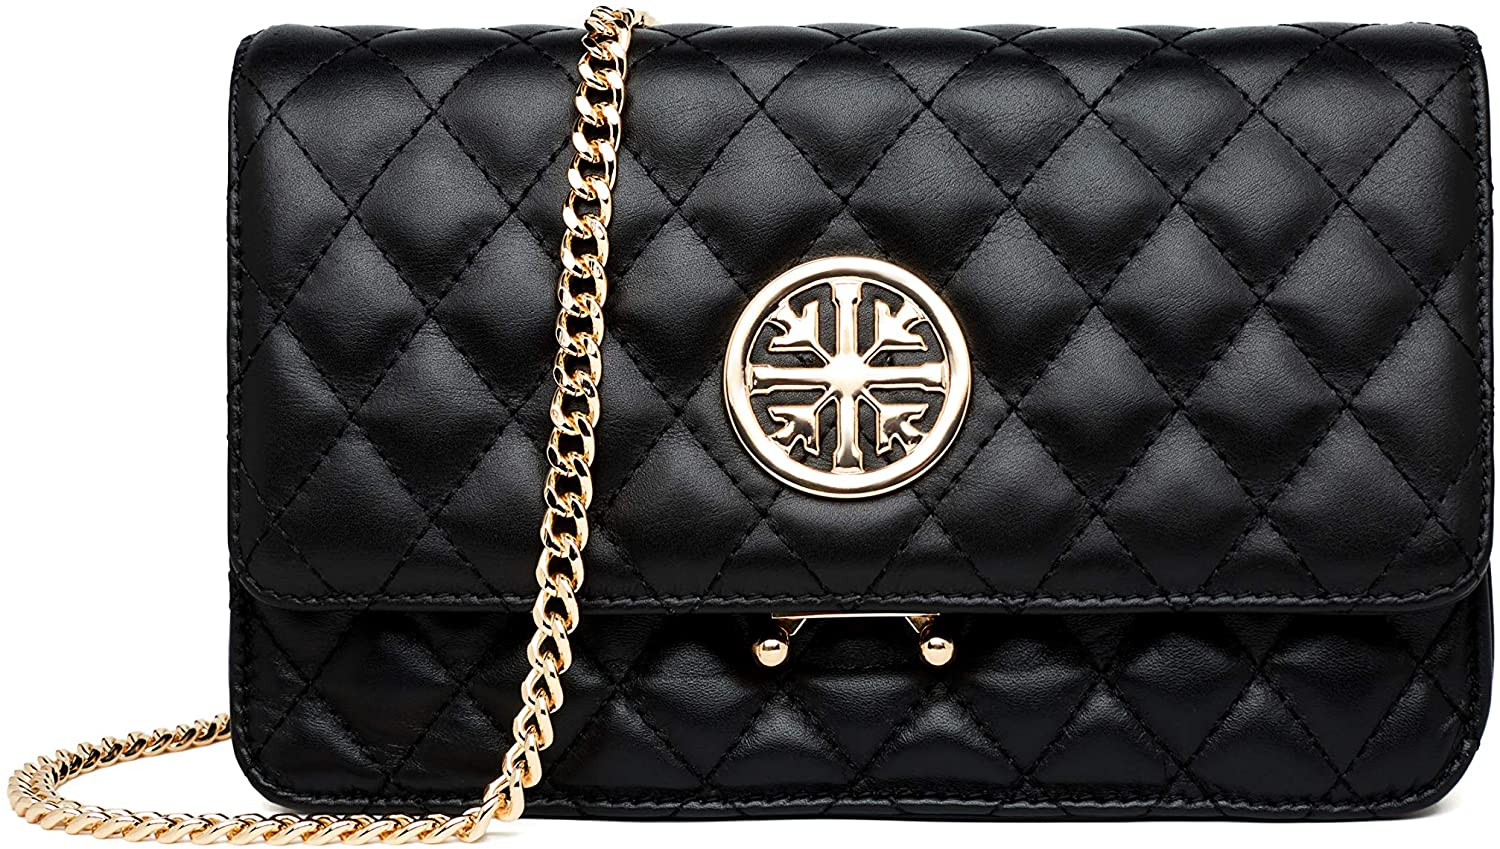 Women Genuine Leather Shoulder Bag Ladies Fashion Clutch Purses Quilted Crossbody Bags With Chain